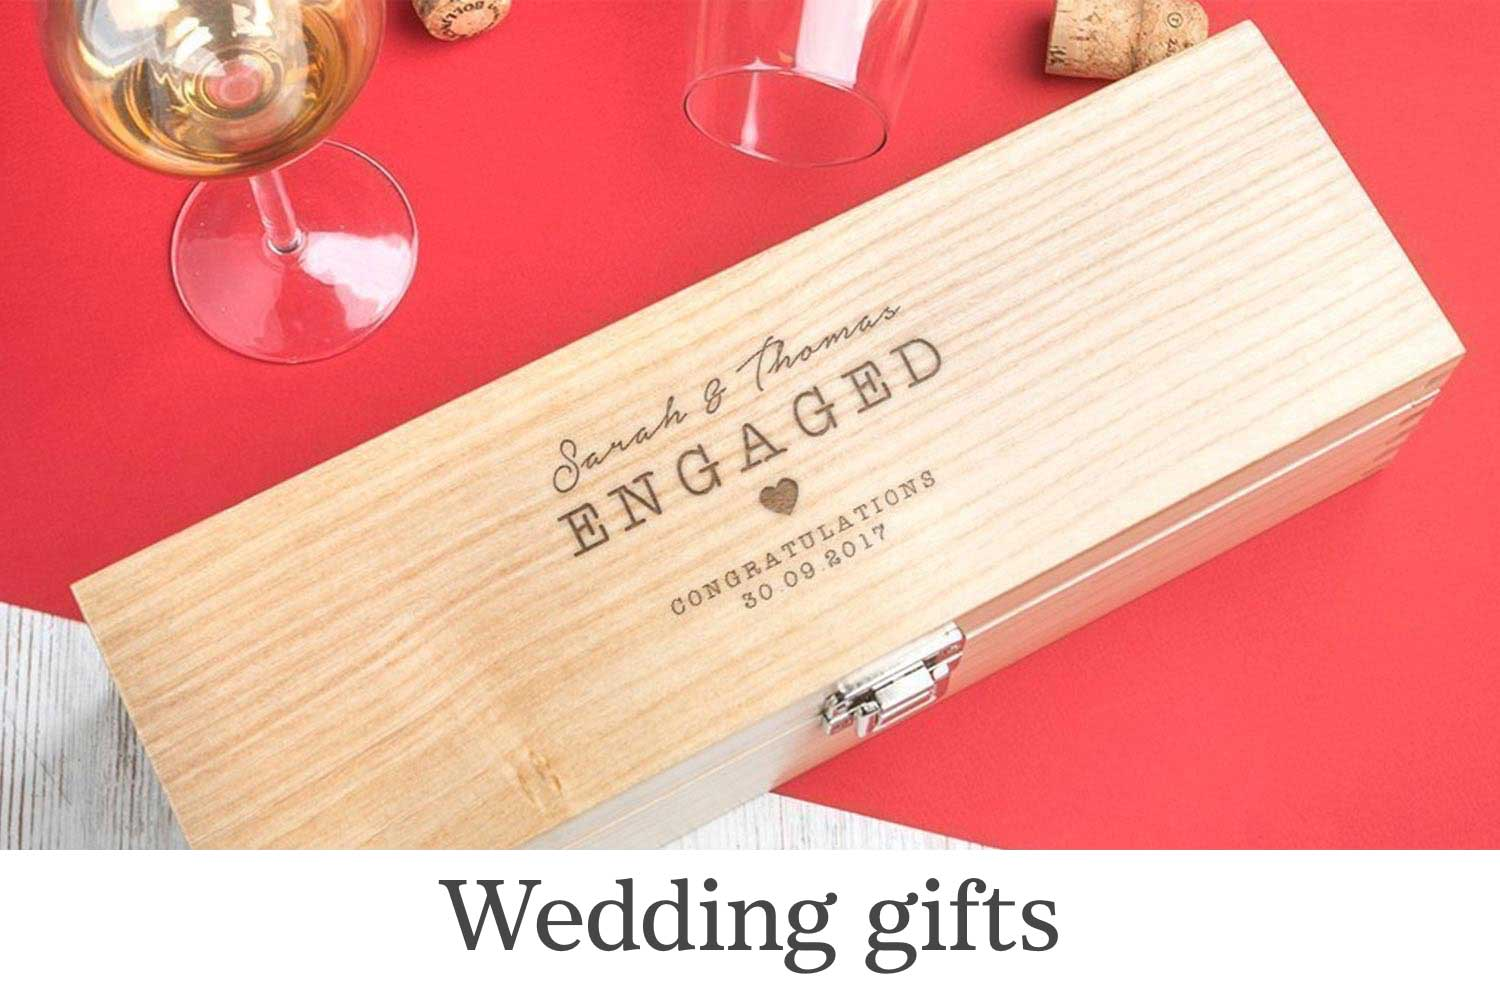 Handmade wedding gifts